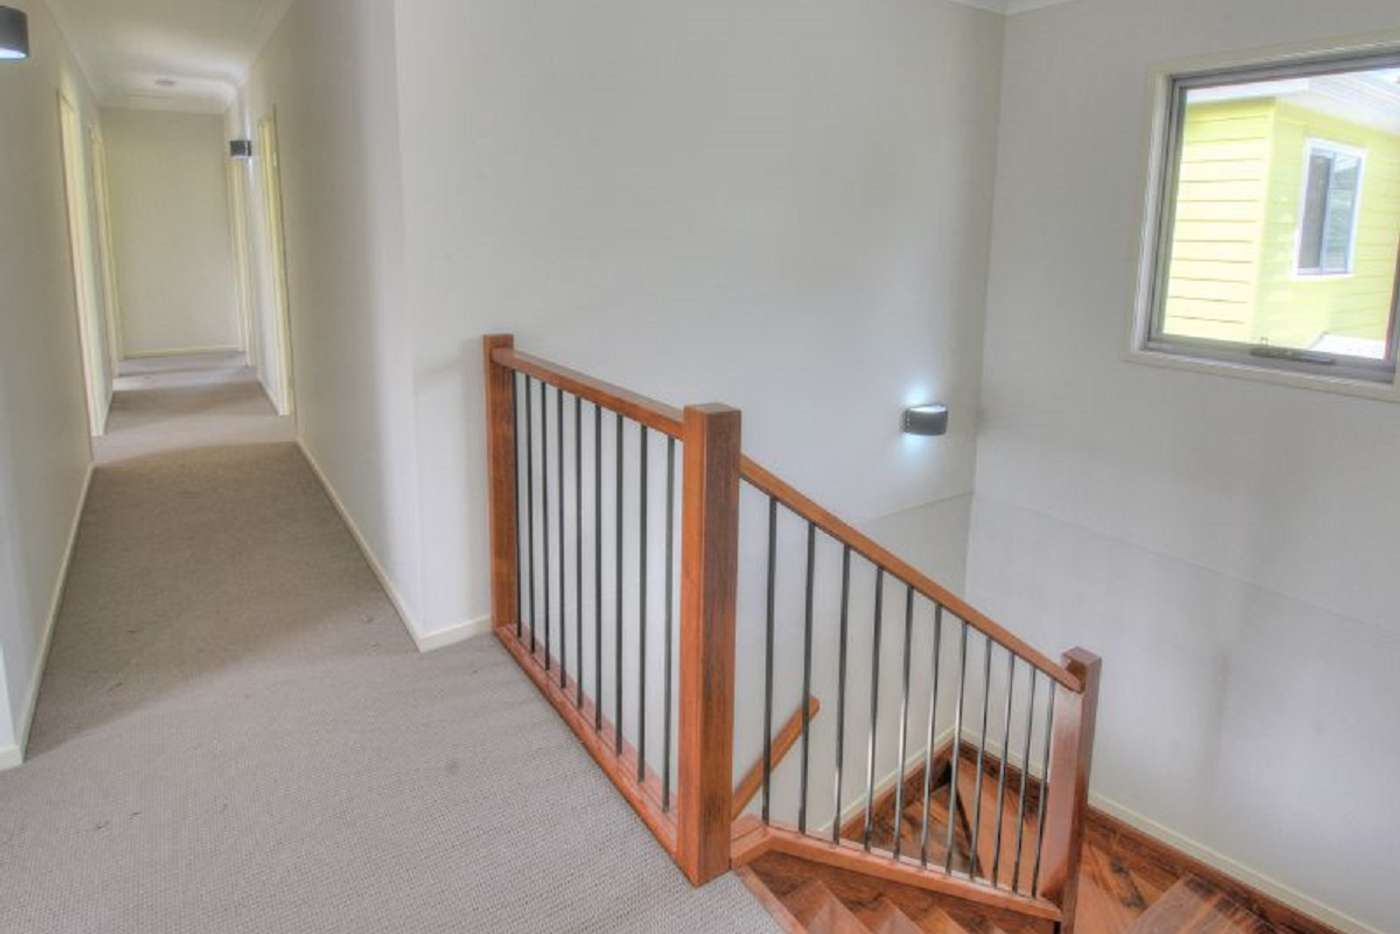 Sixth view of Homely house listing, 156 Highgate Street, Coopers Plains QLD 4108